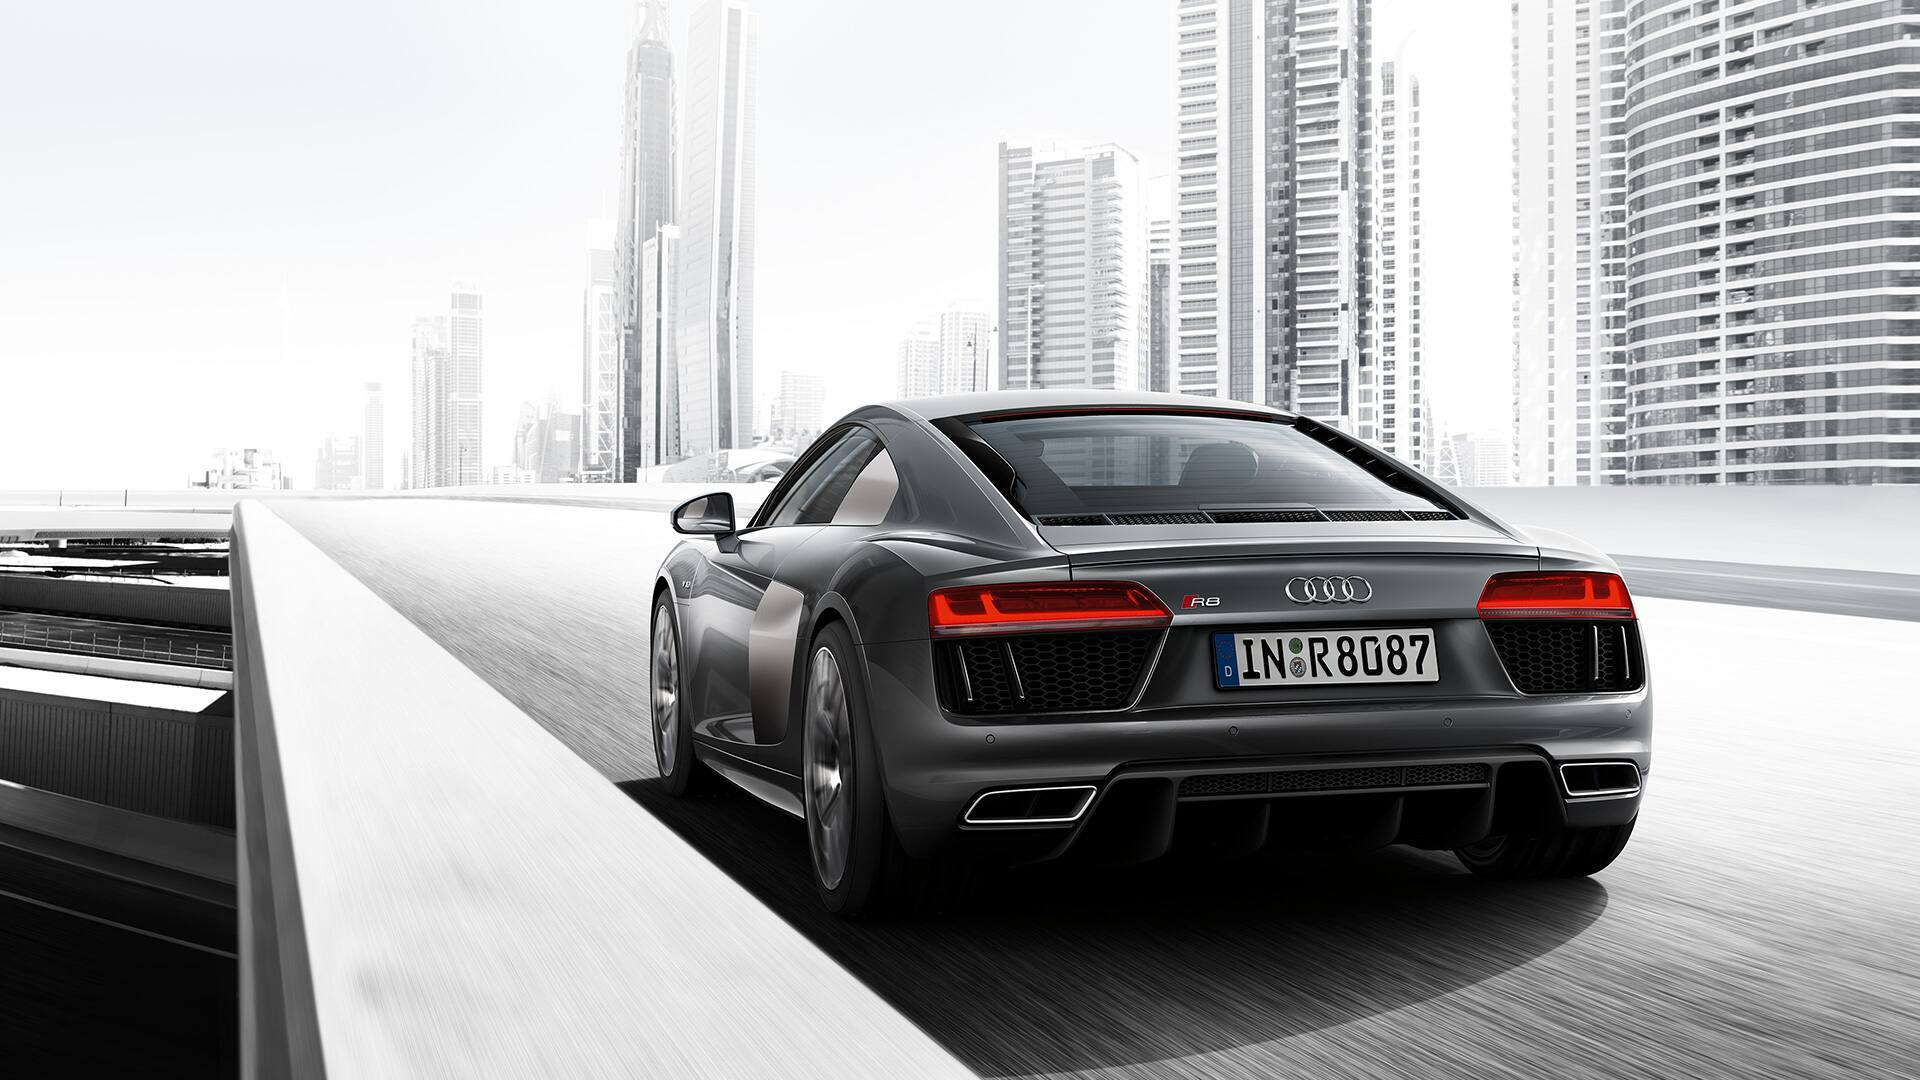 audi r8 coup european supercar audi australia r8. Black Bedroom Furniture Sets. Home Design Ideas